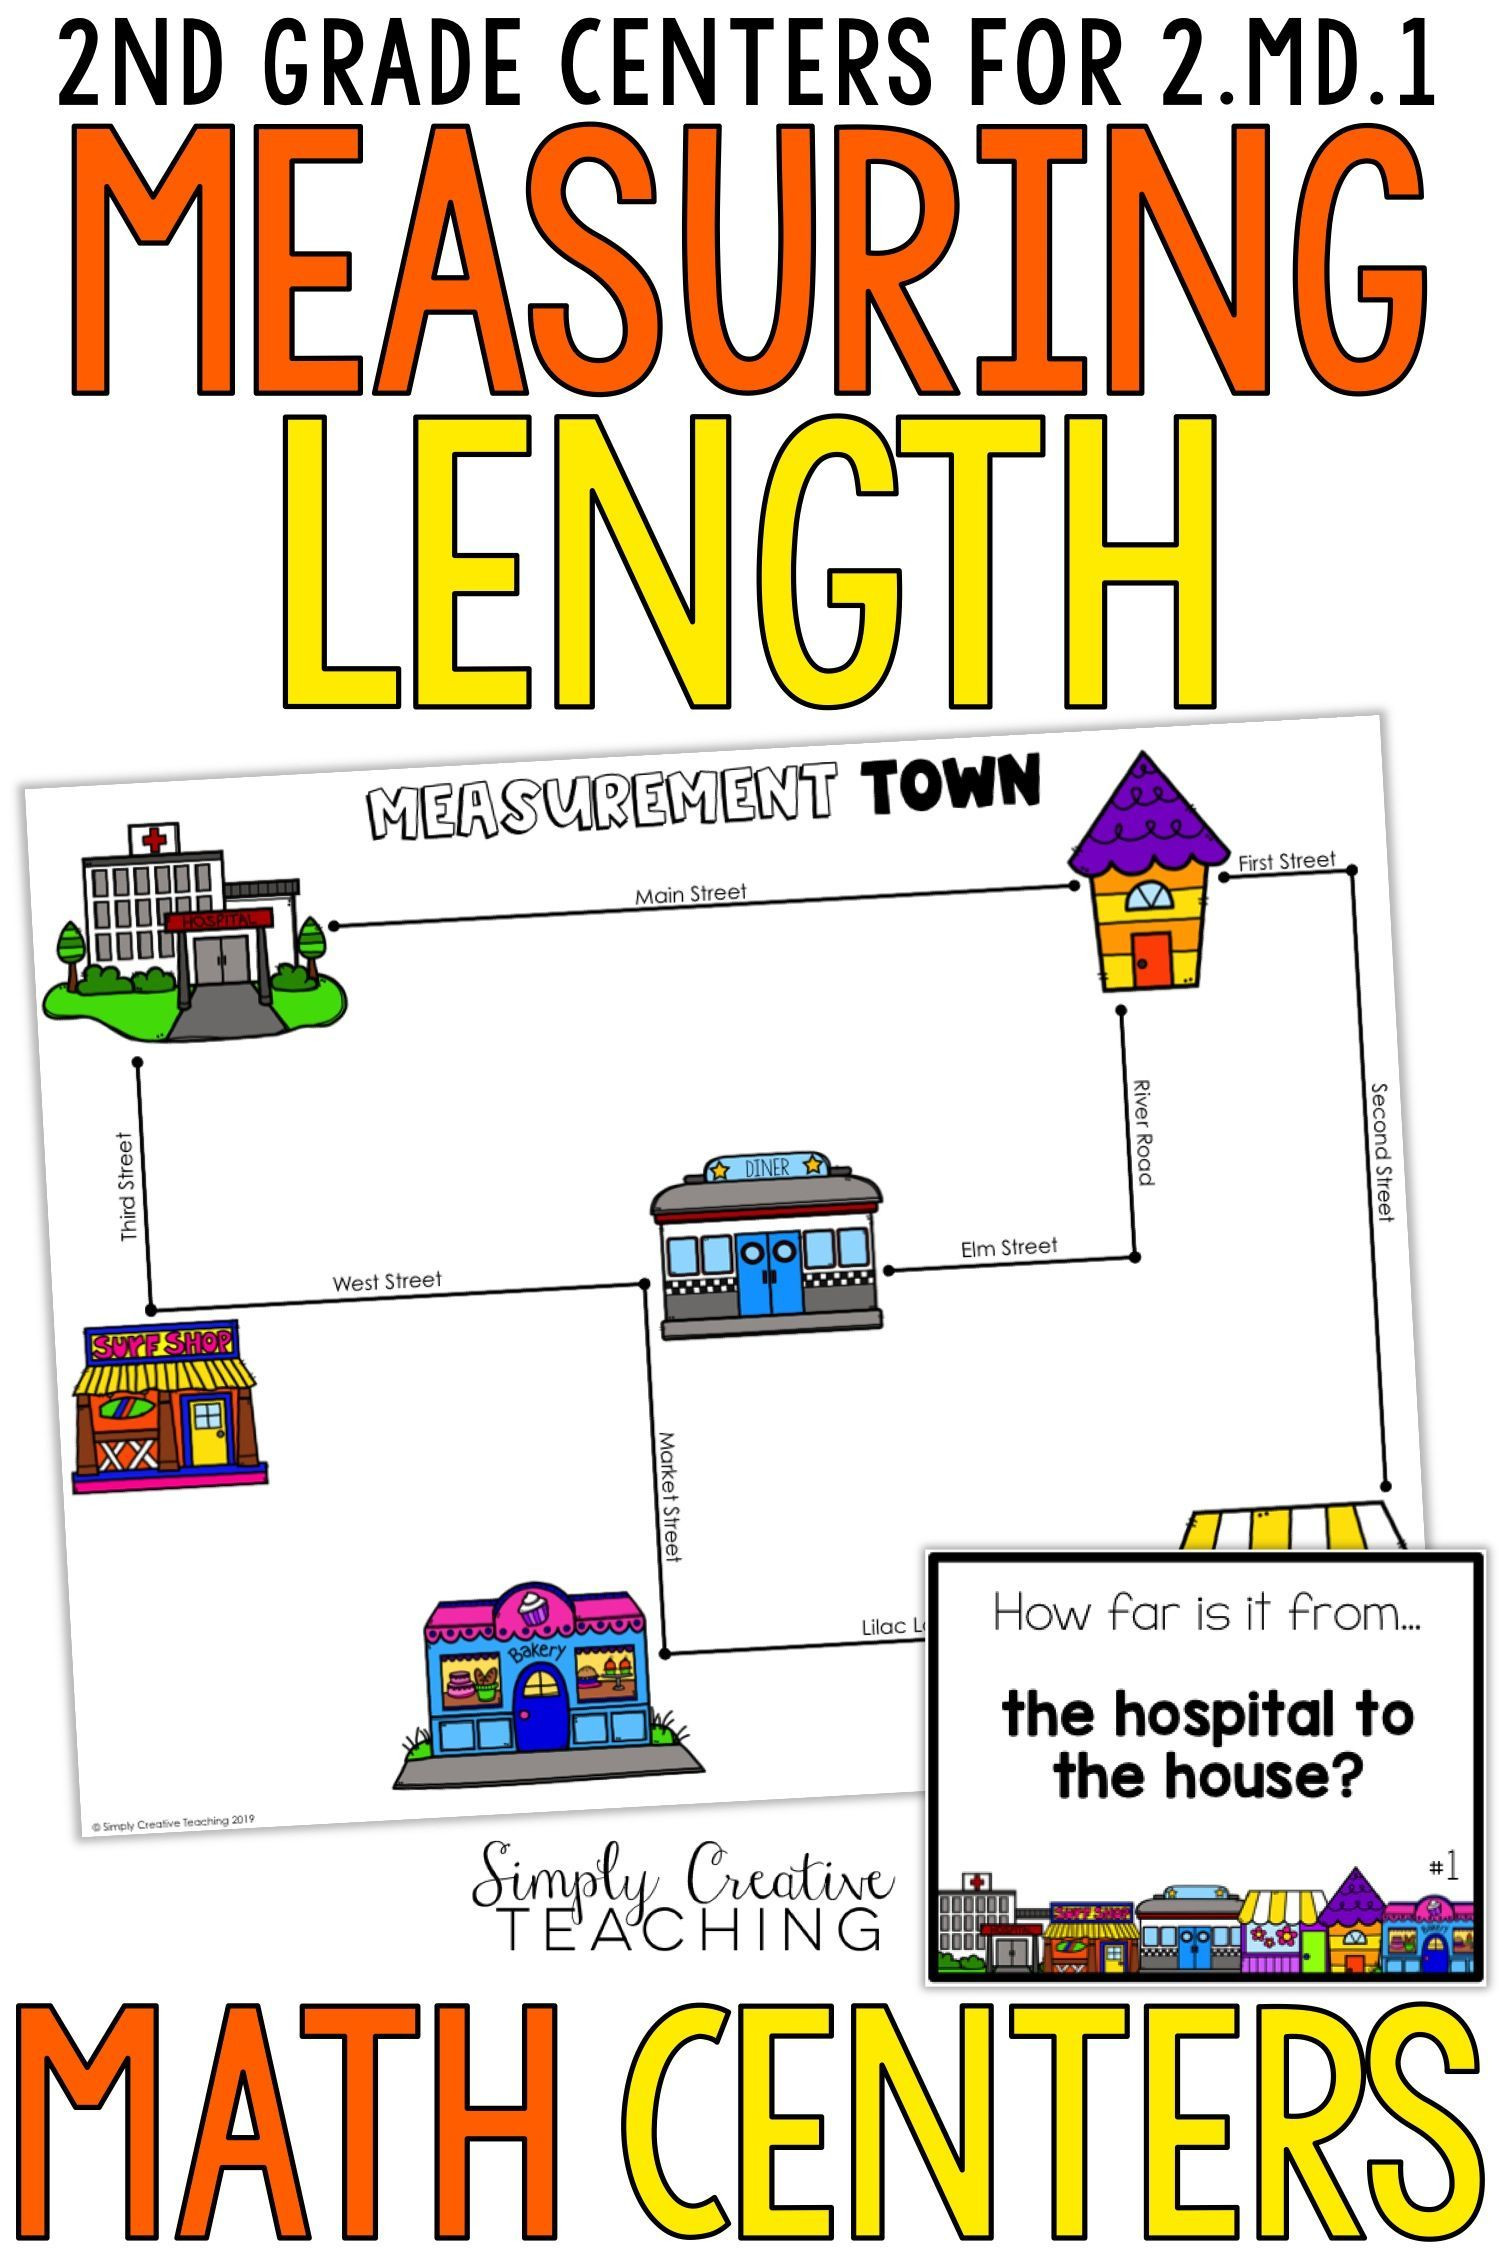 Measuring Worksheet 2nd Grade 2nd Grade Measurement Centers for 2 Md 1